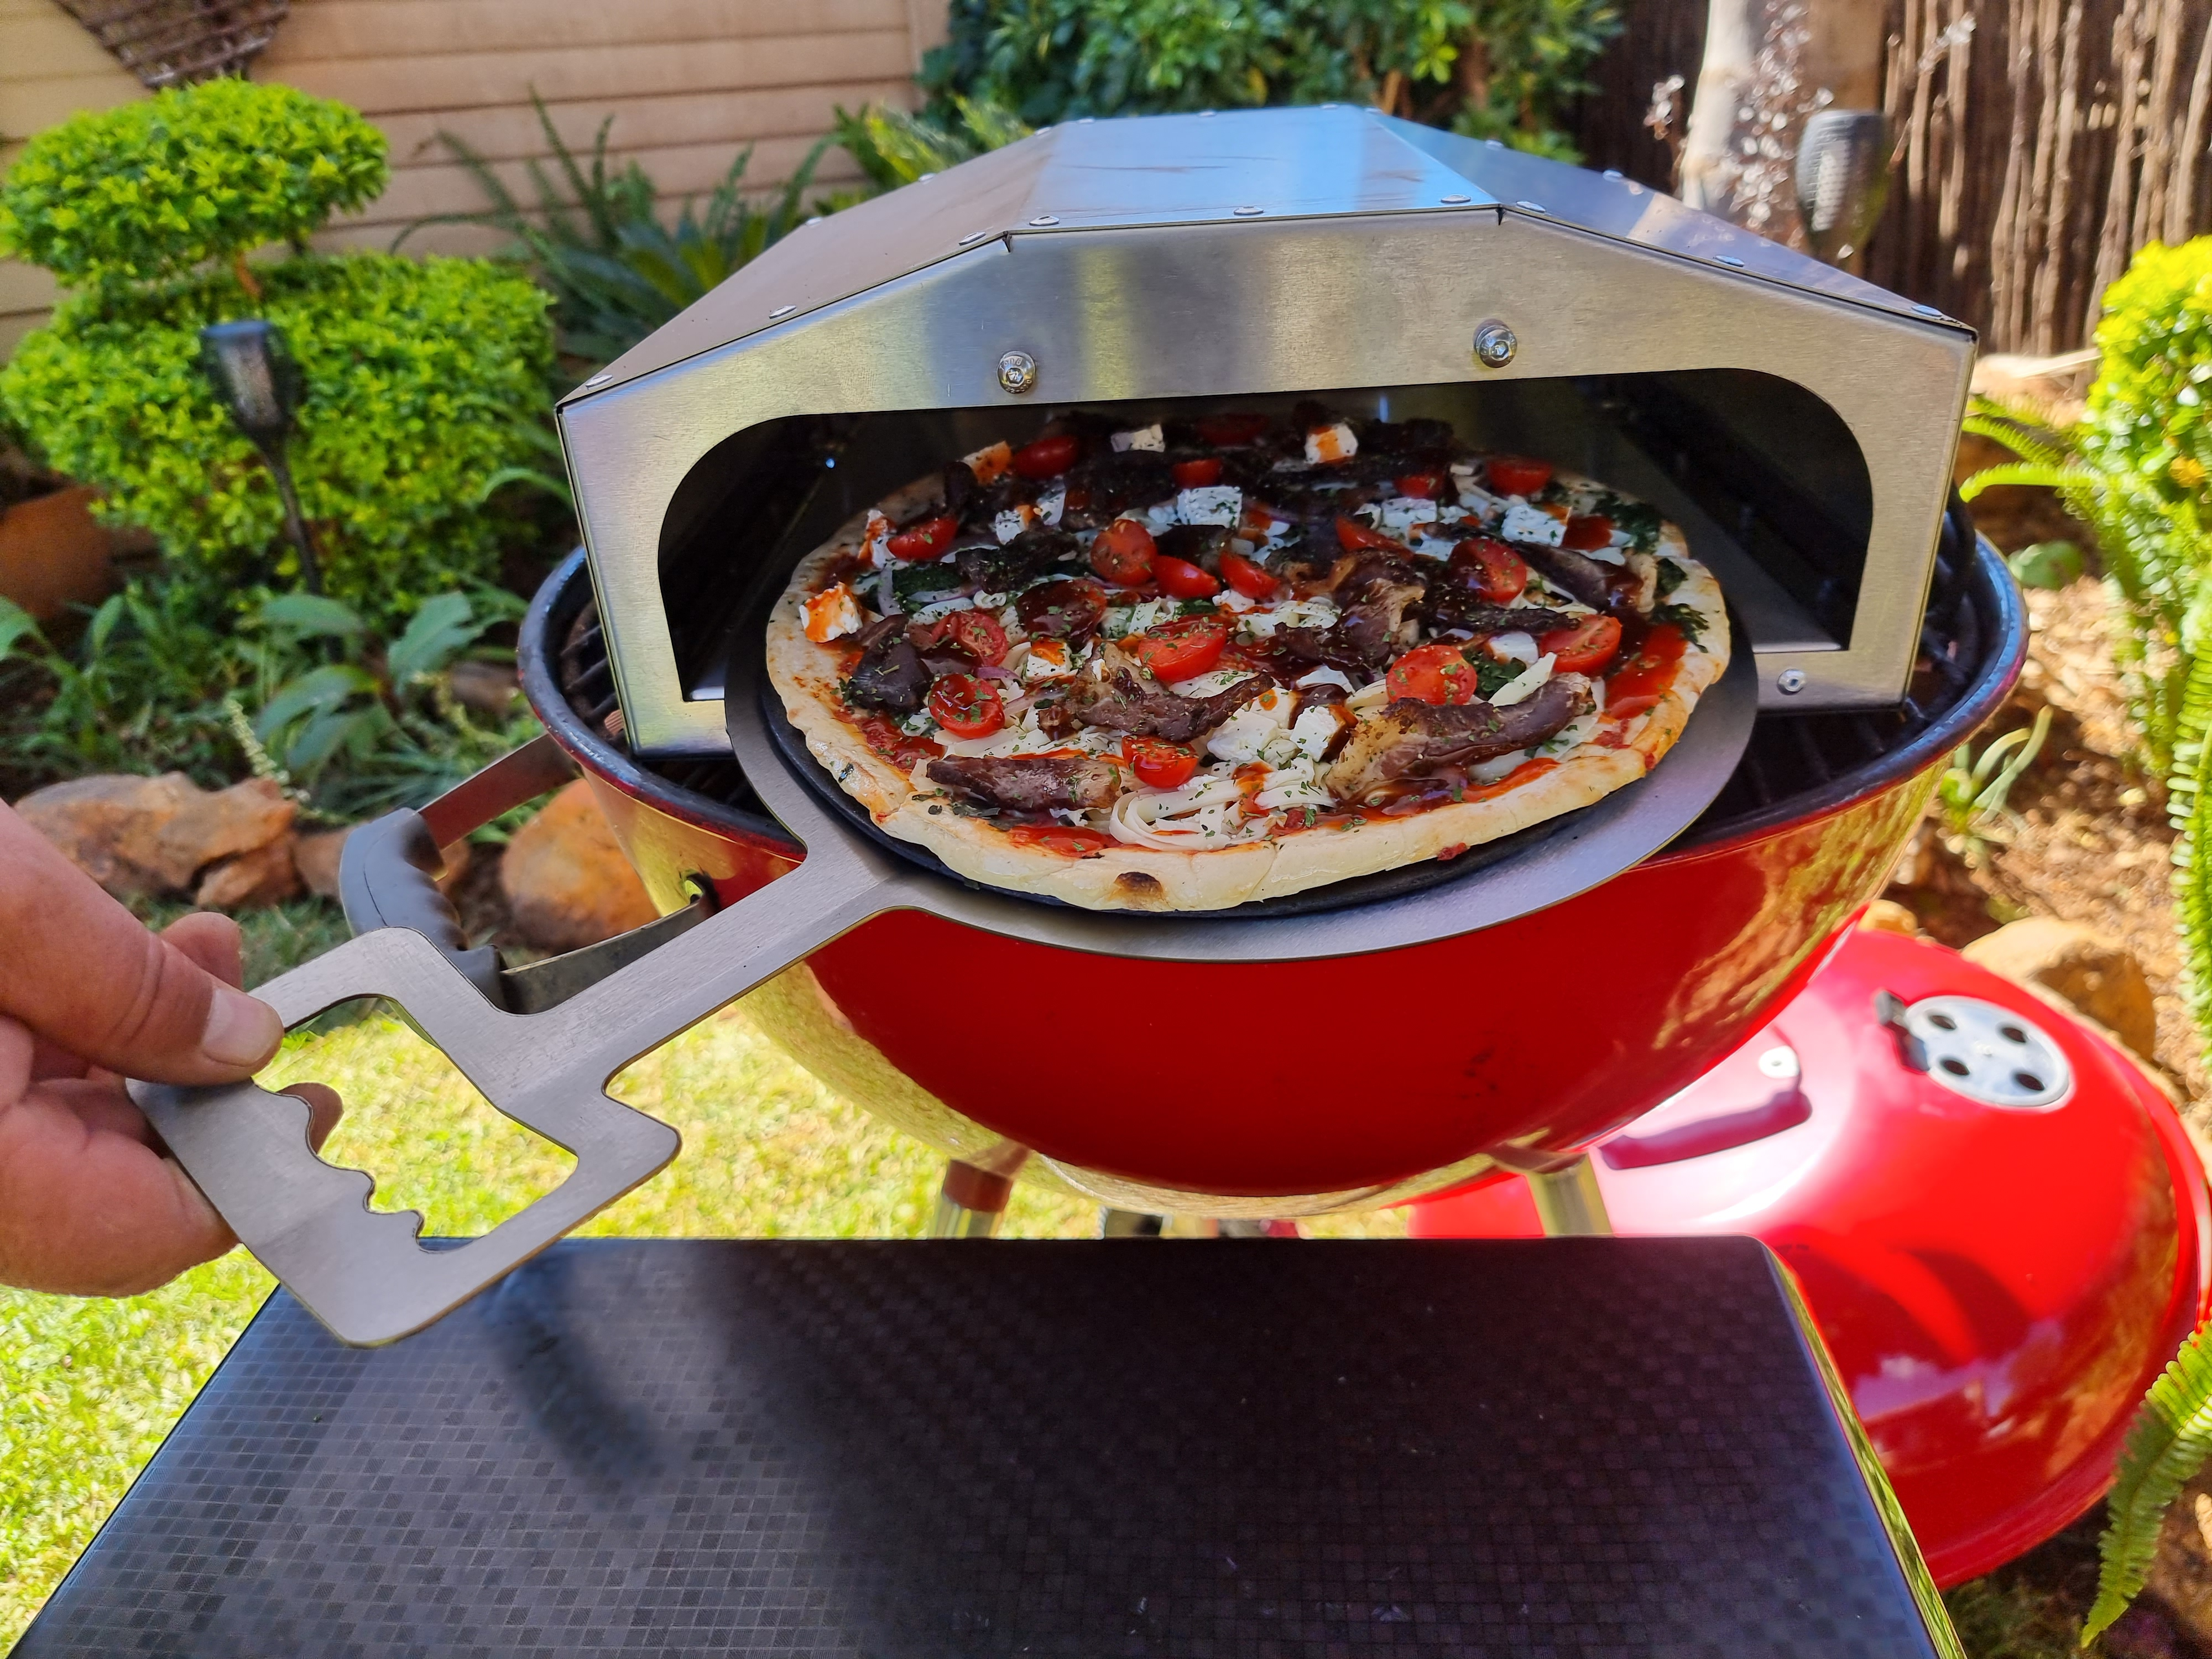 Pizza Oven For Braai – Single Large Pizza